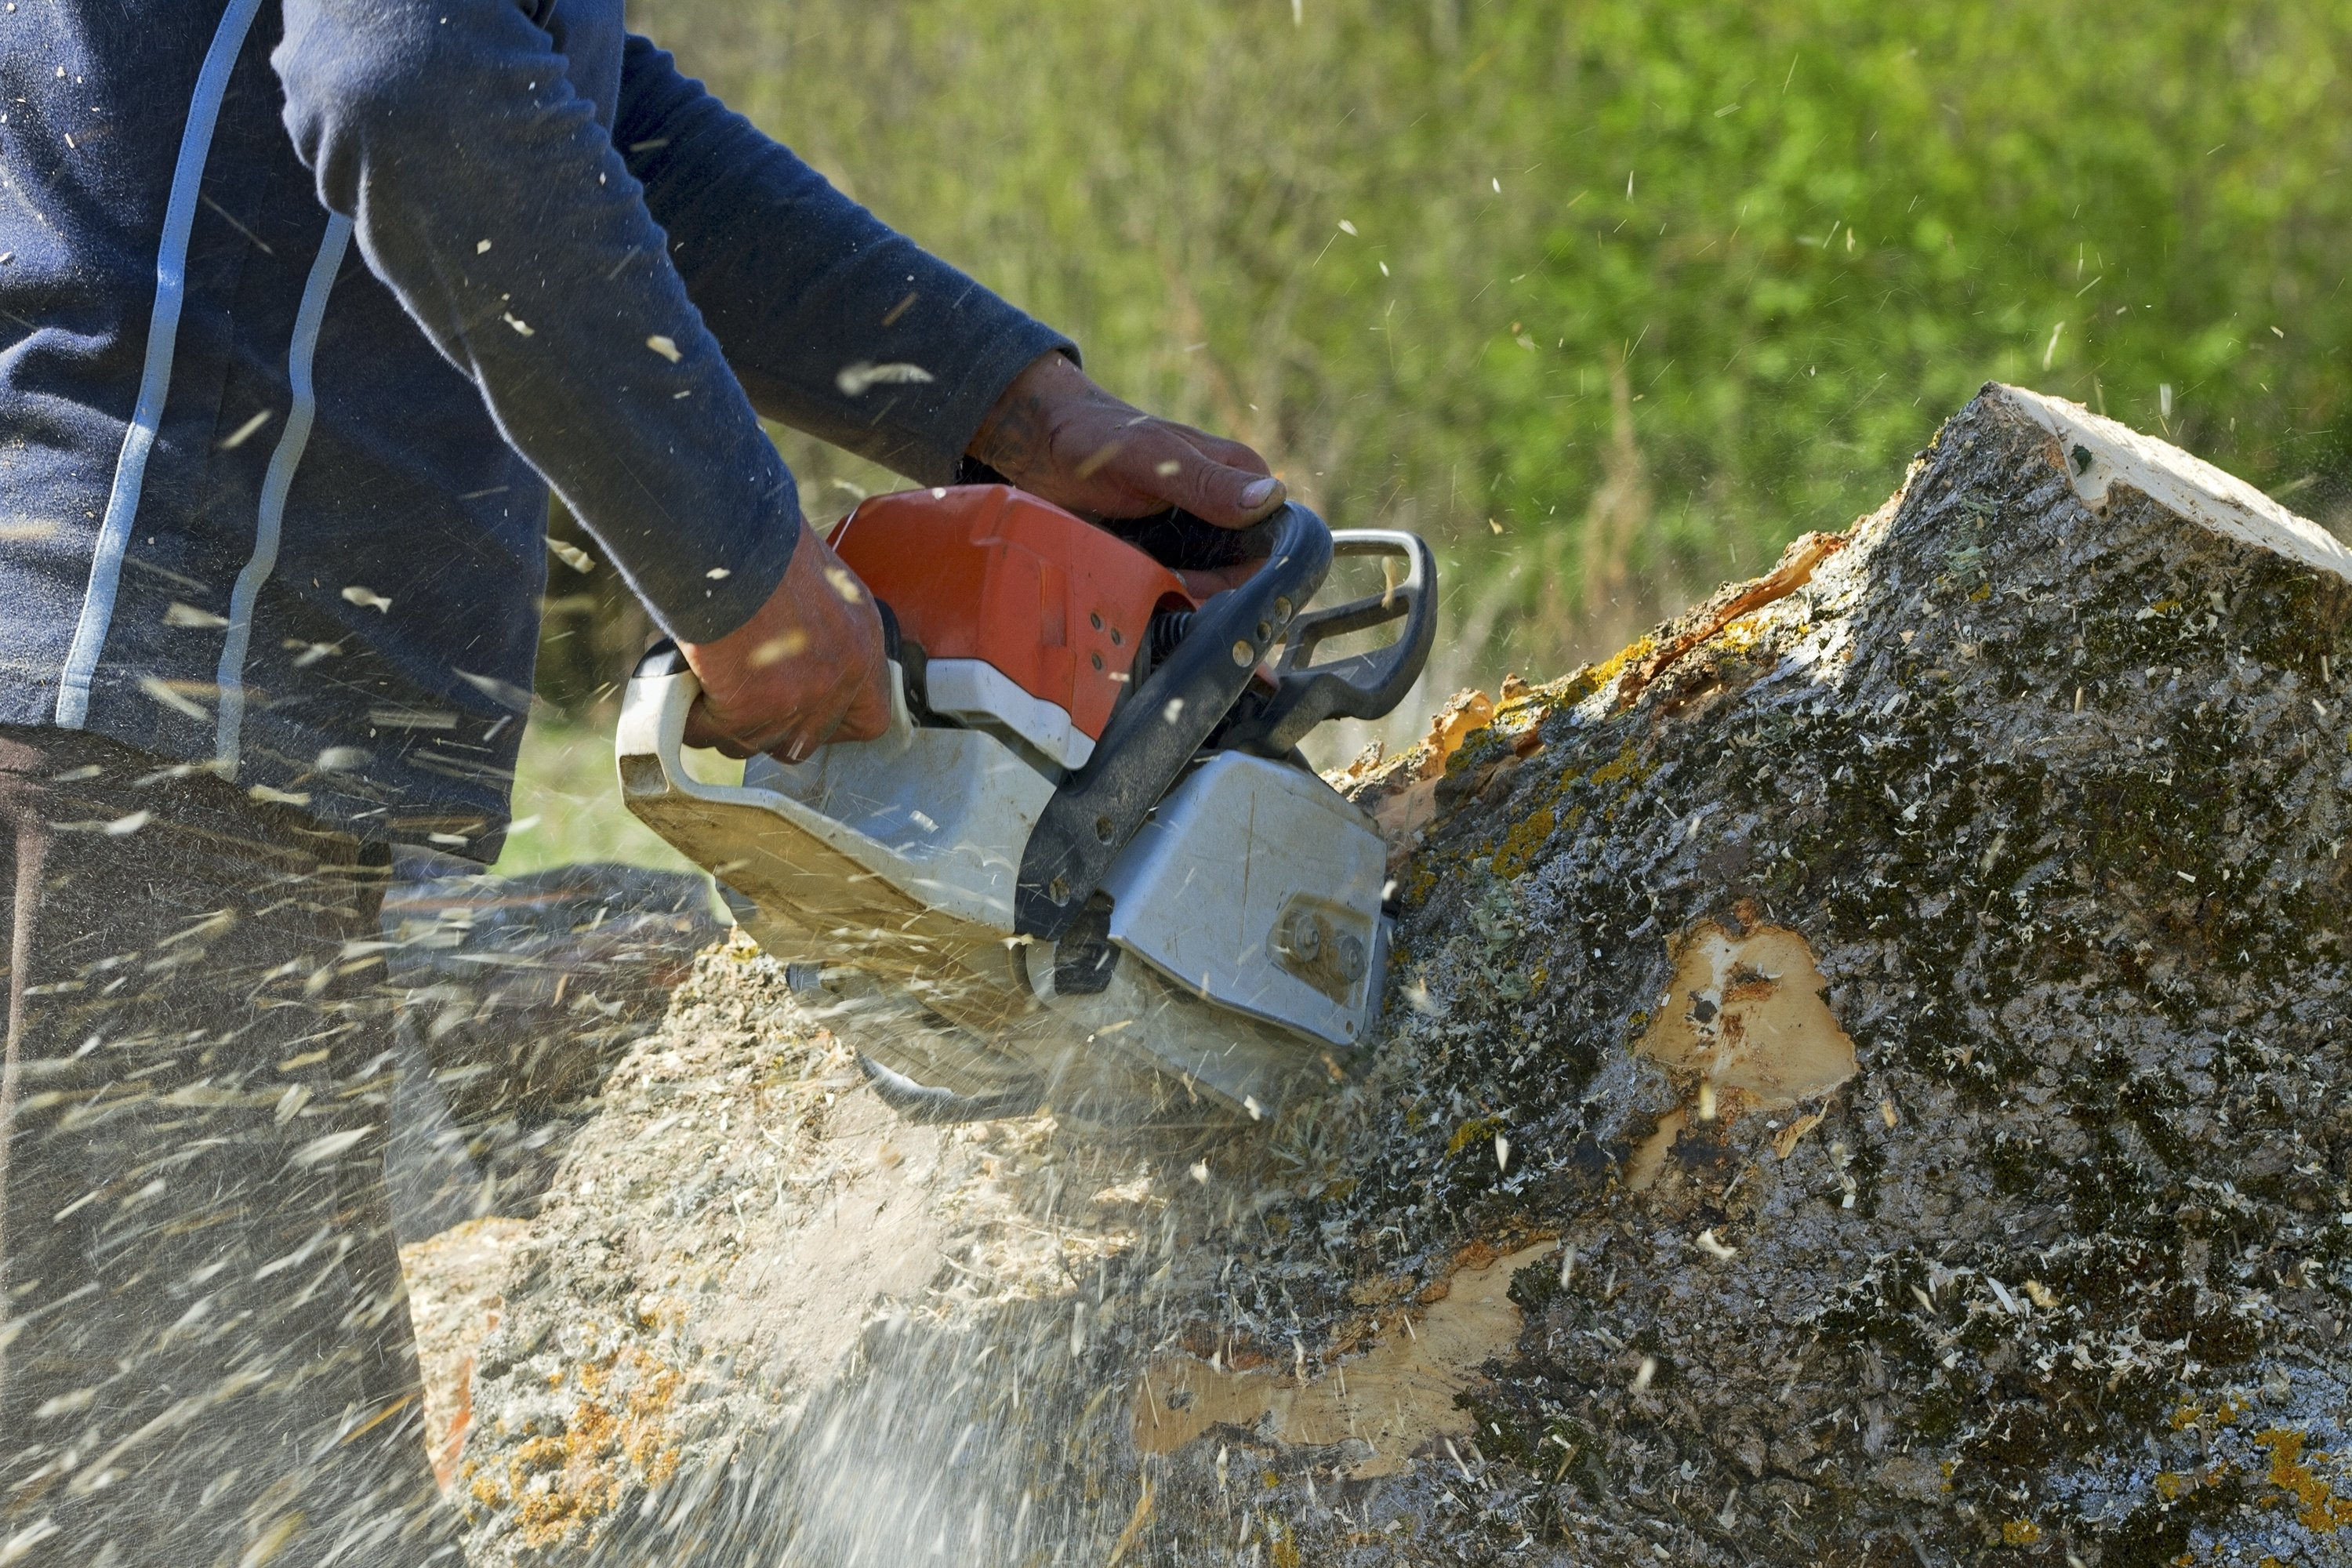 Worker cutting up a tree with a chain saw